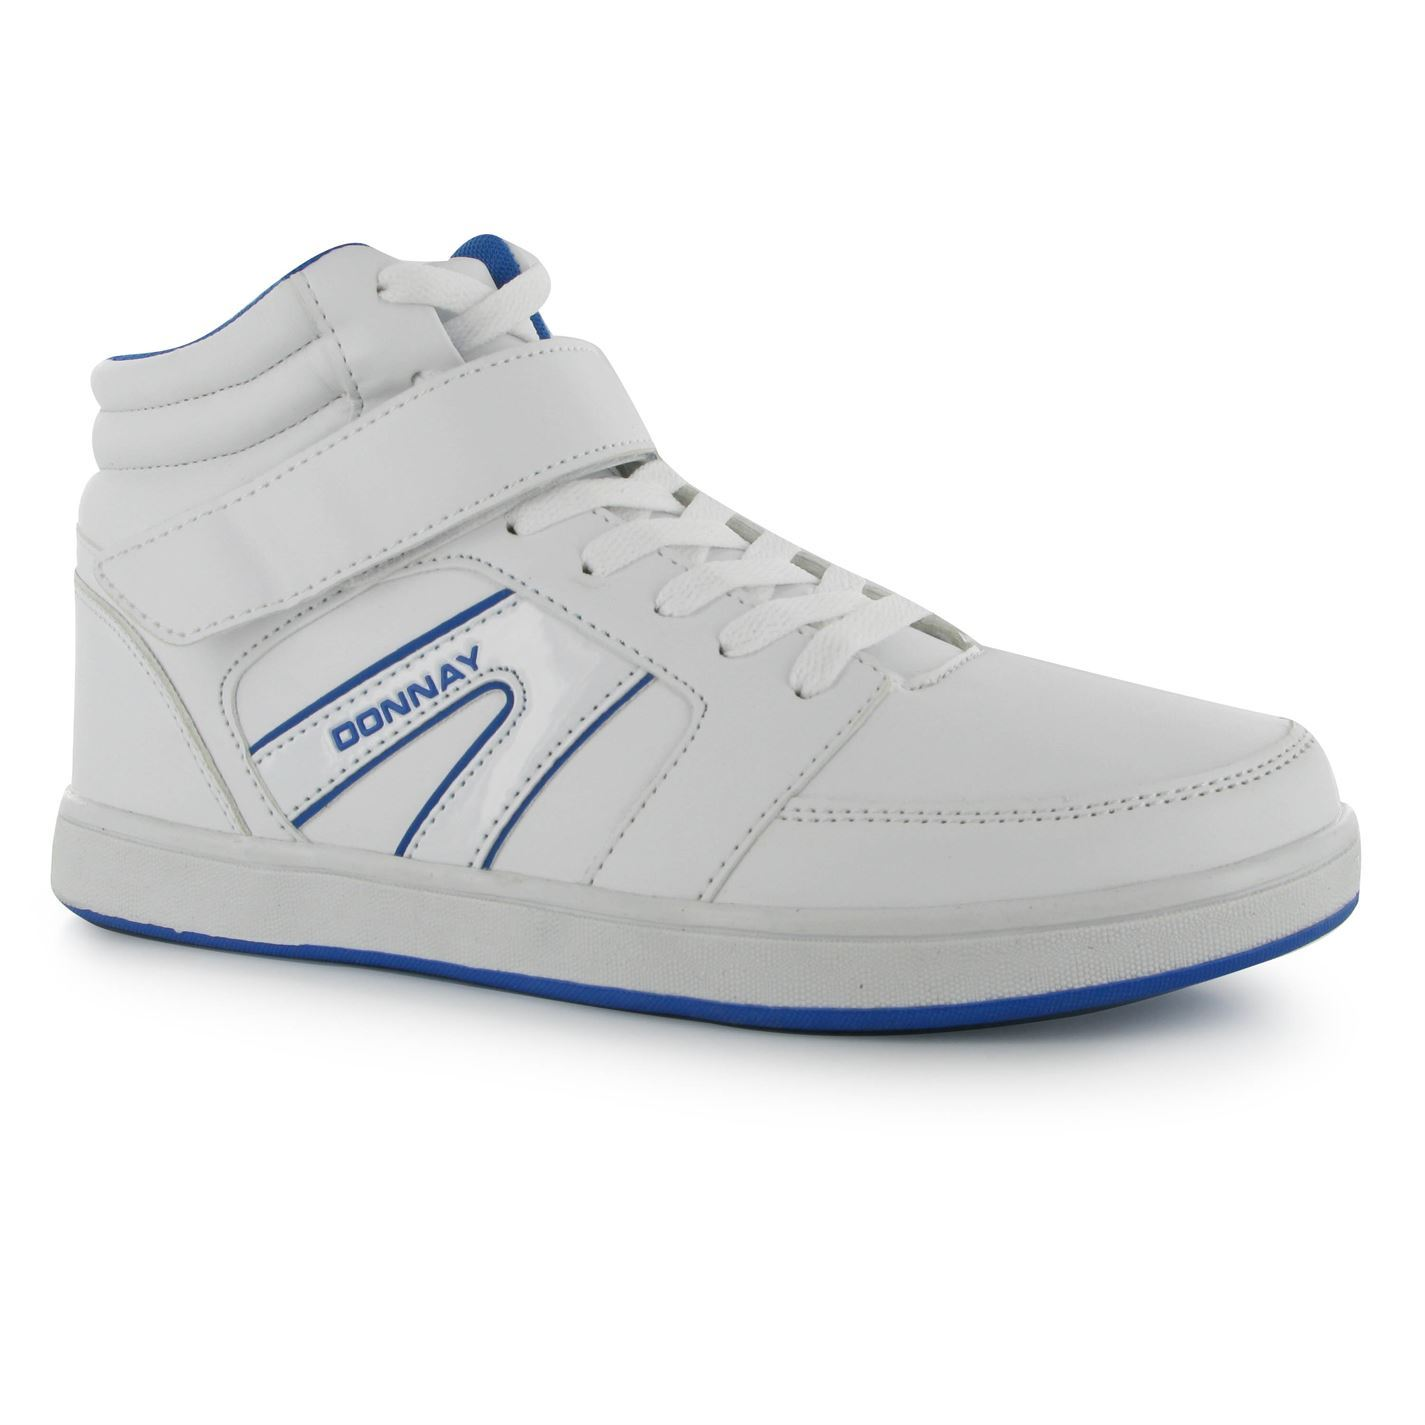 Donnay Shoes Uk